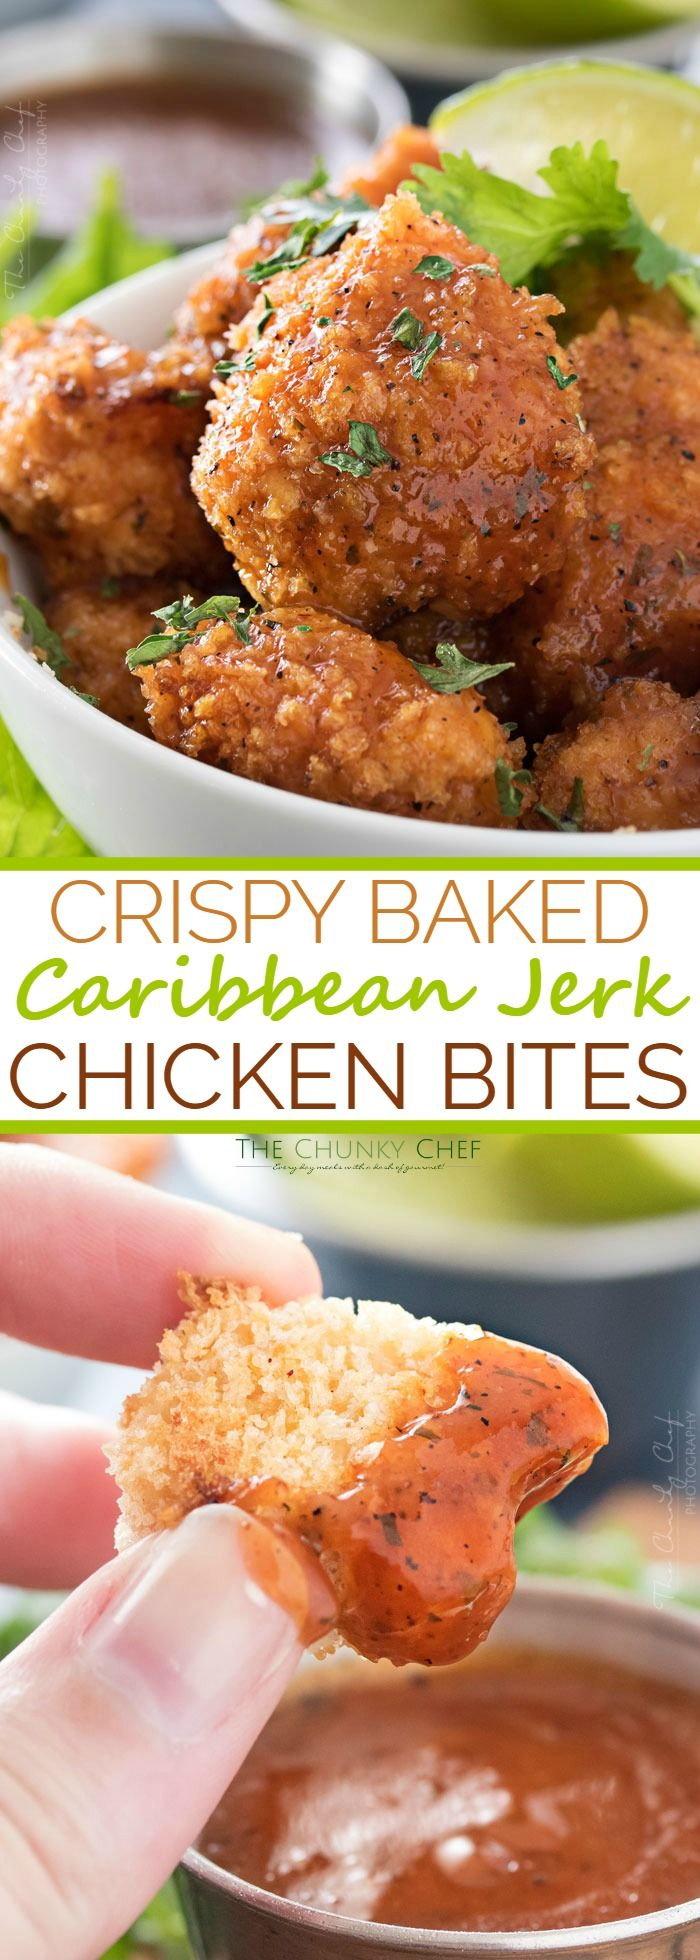 Baked Caribbean Jerk Chicken Bites | These ultra crispy chicken bites are lightened up by baking instead of frying in oil, then tossed in a mouthwatering copycat Caribbean Jerk sauce! | http://thechunkychef.com